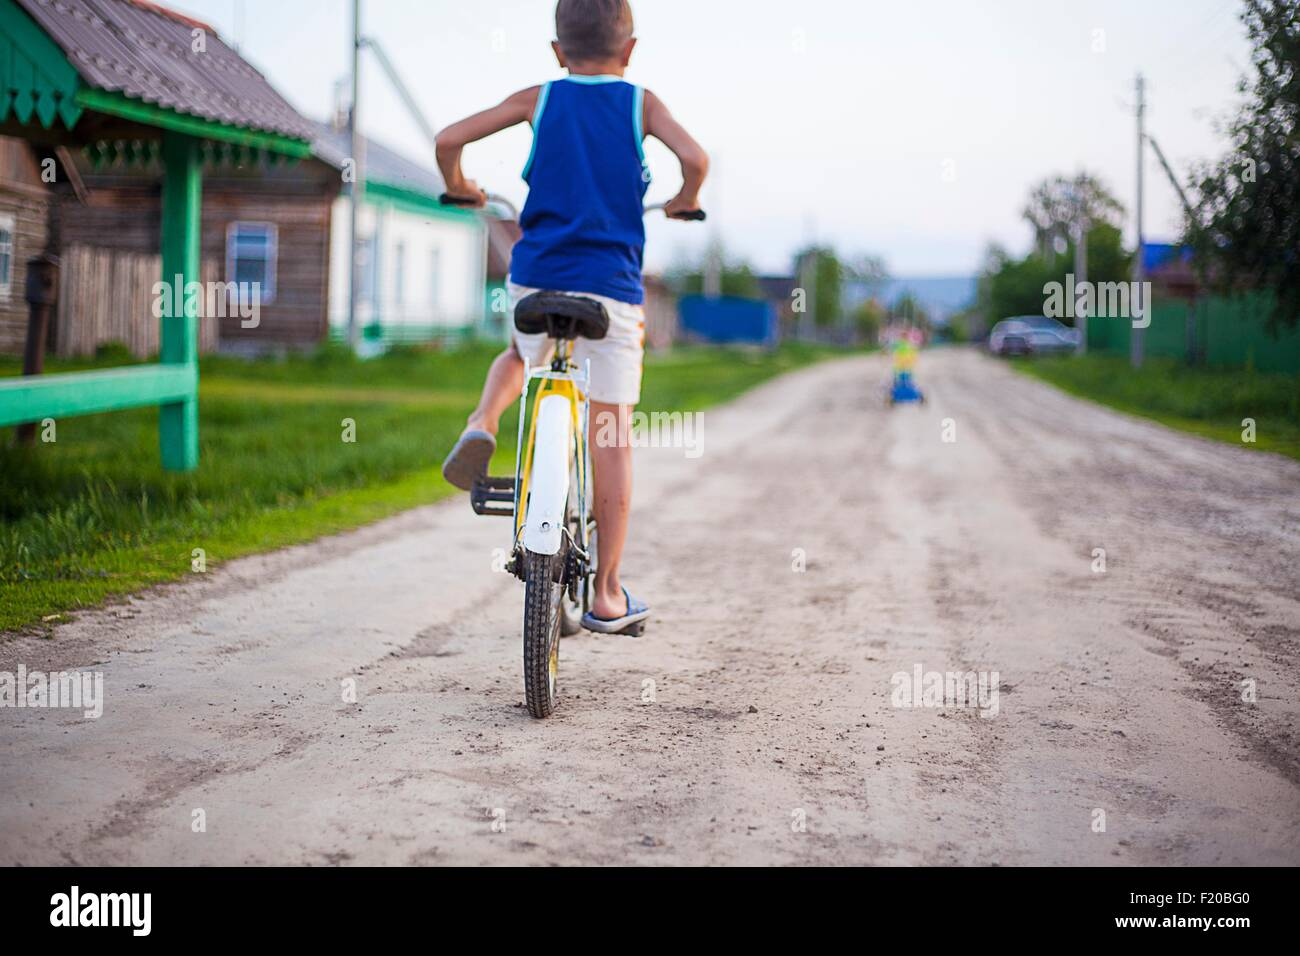 Young boy, riding bicycle along dirt road, rear view - Stock Image